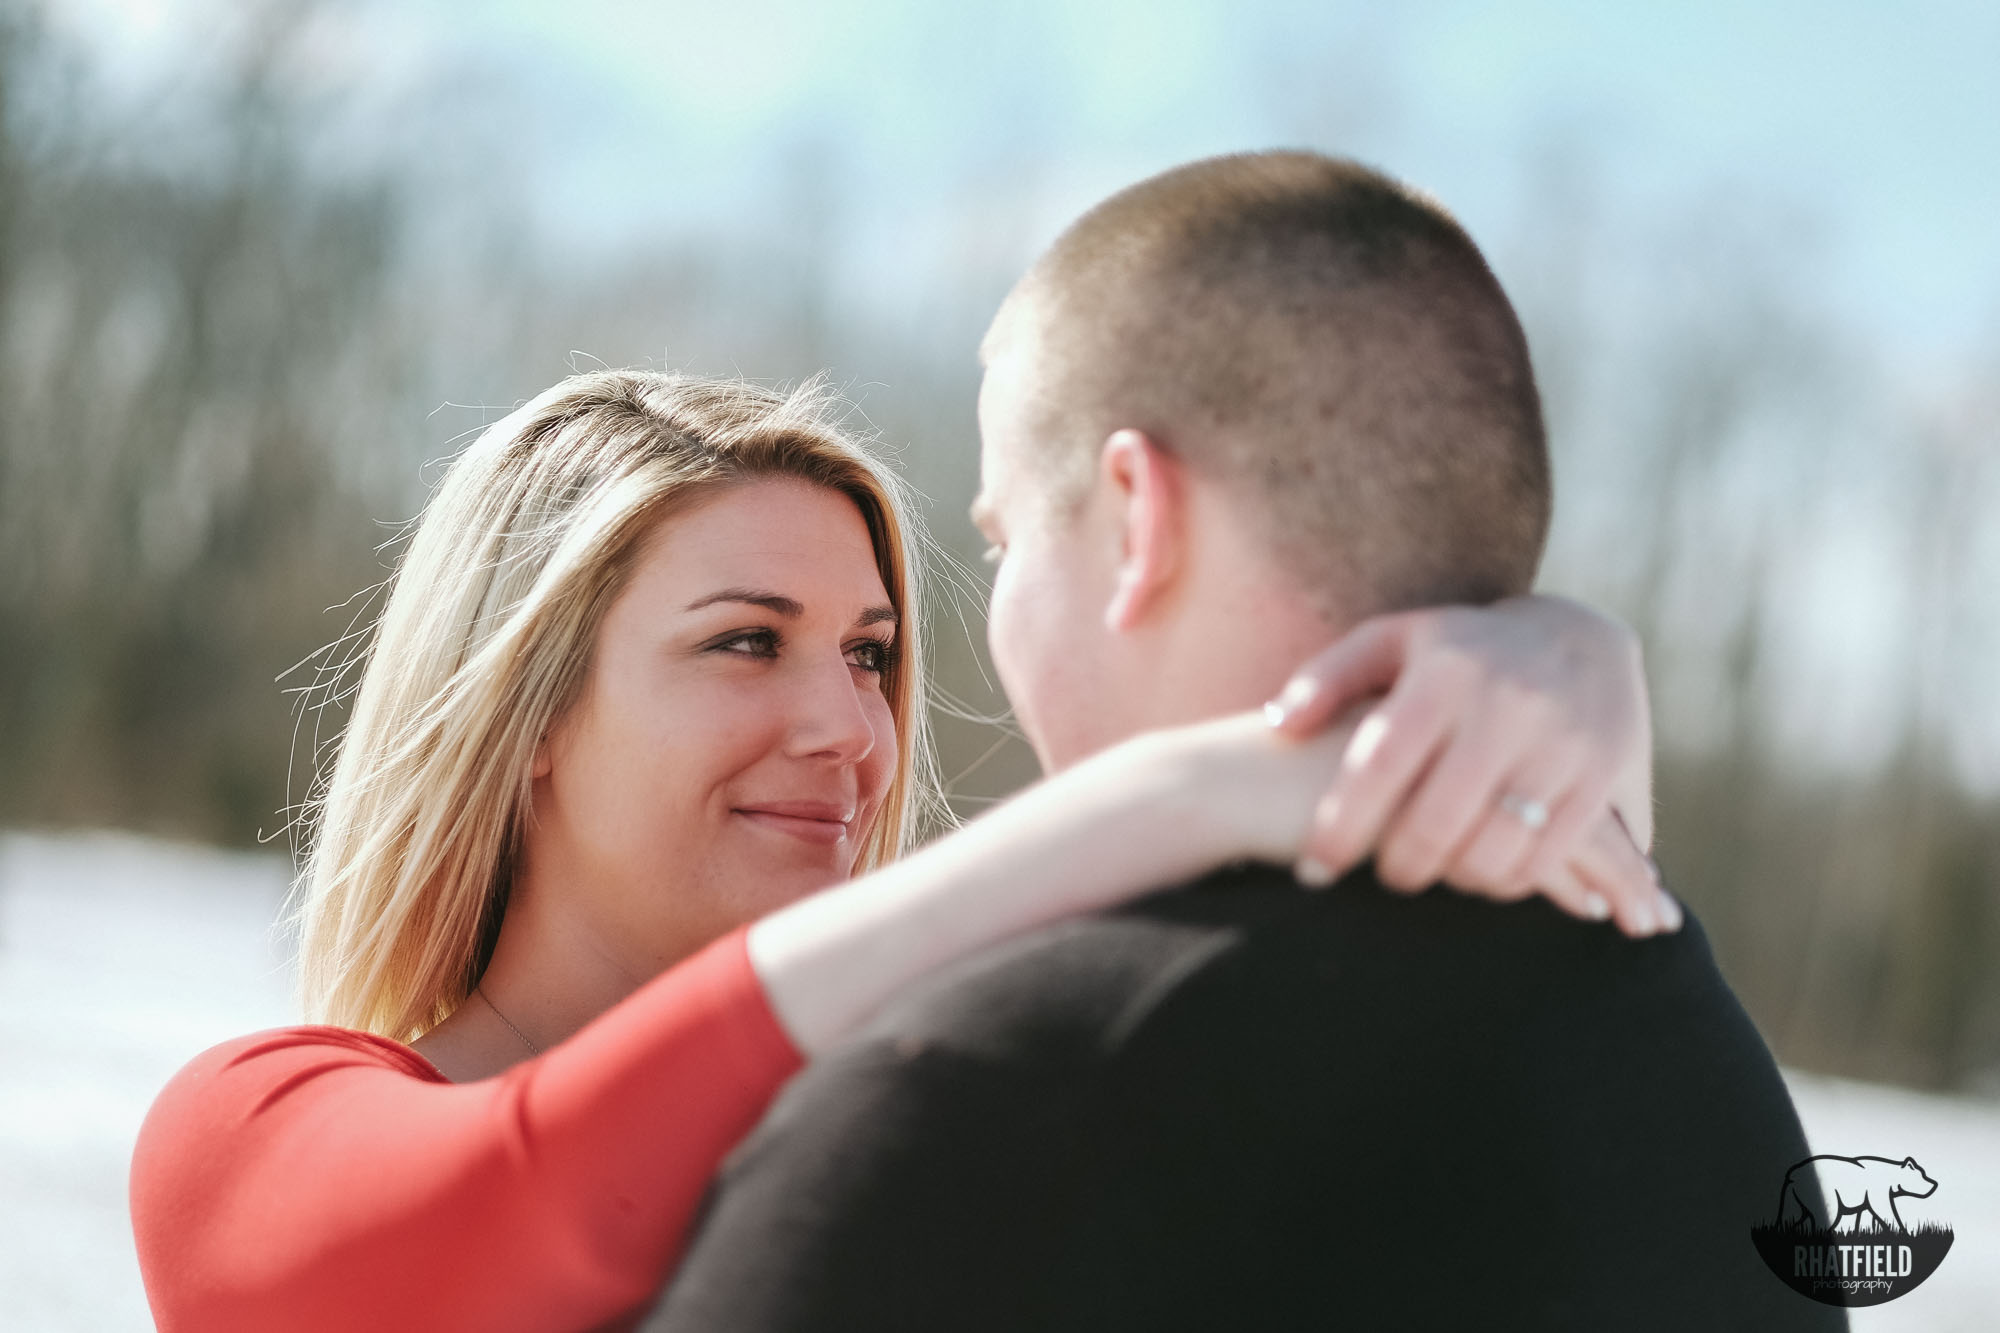 Caylee and Nick 100 acre woods engagements www.RHatfieldPhotography.com